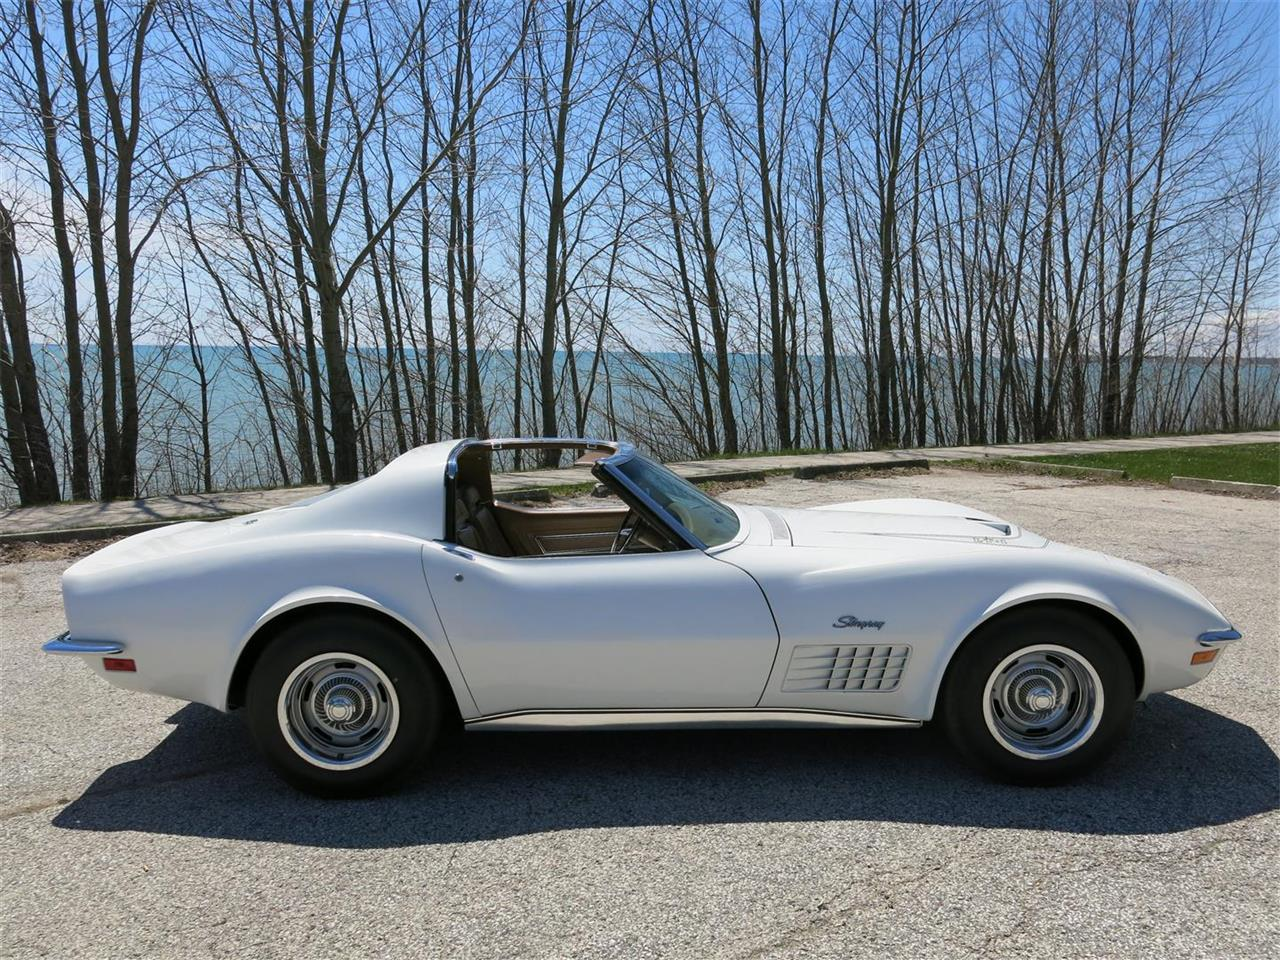 Large Picture of Classic '72 Chevrolet Corvette located in Wisconsin - $350,000.00 - Q7LN